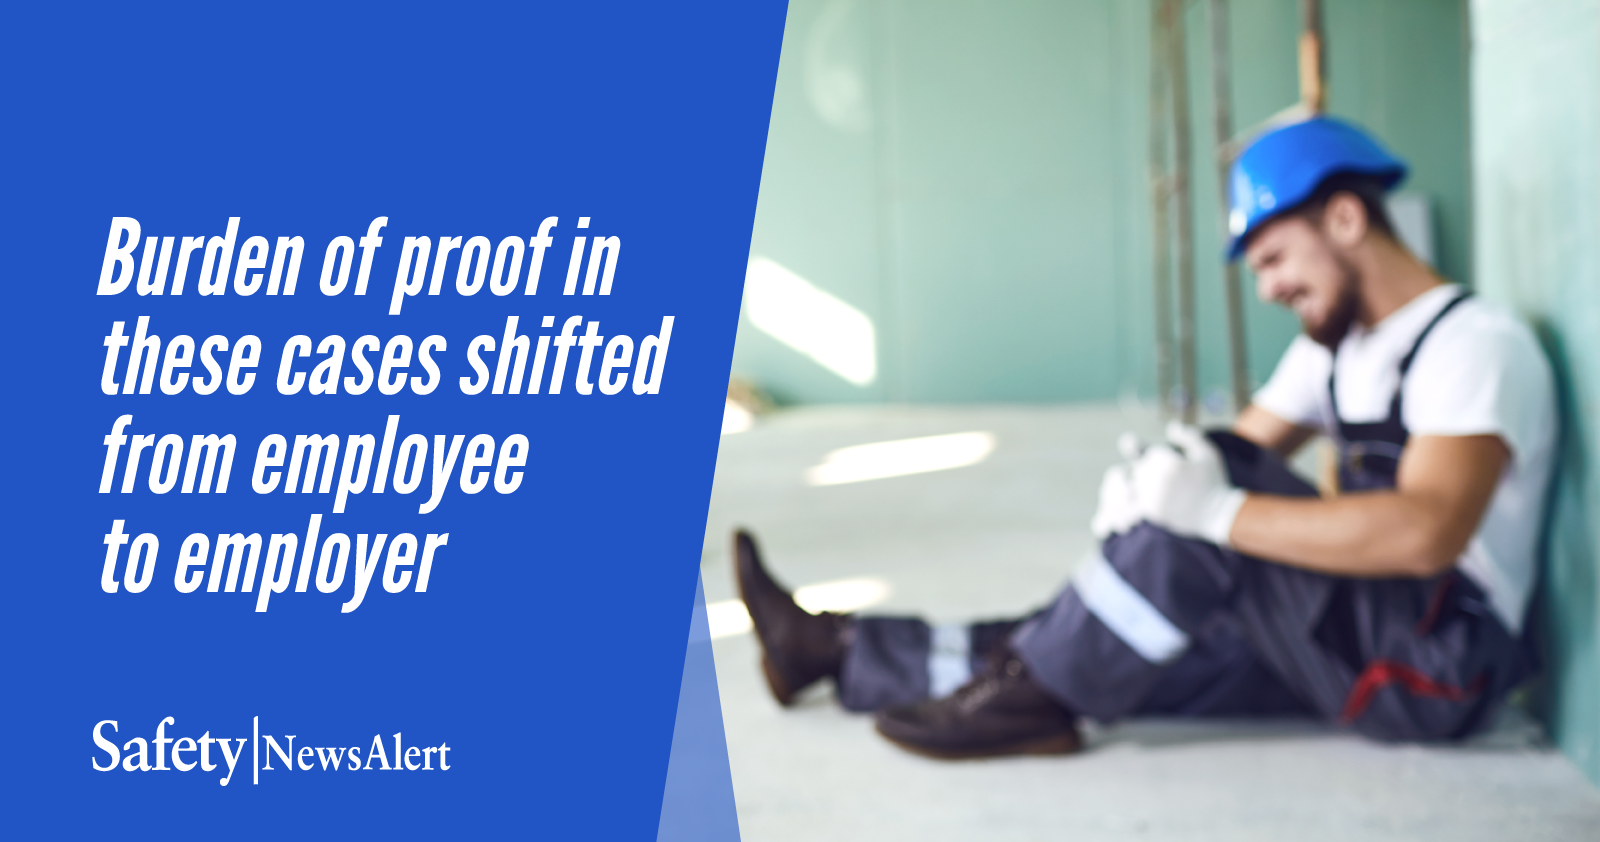 Burden Of Proof In These Cases Shifted From Employee To Employer